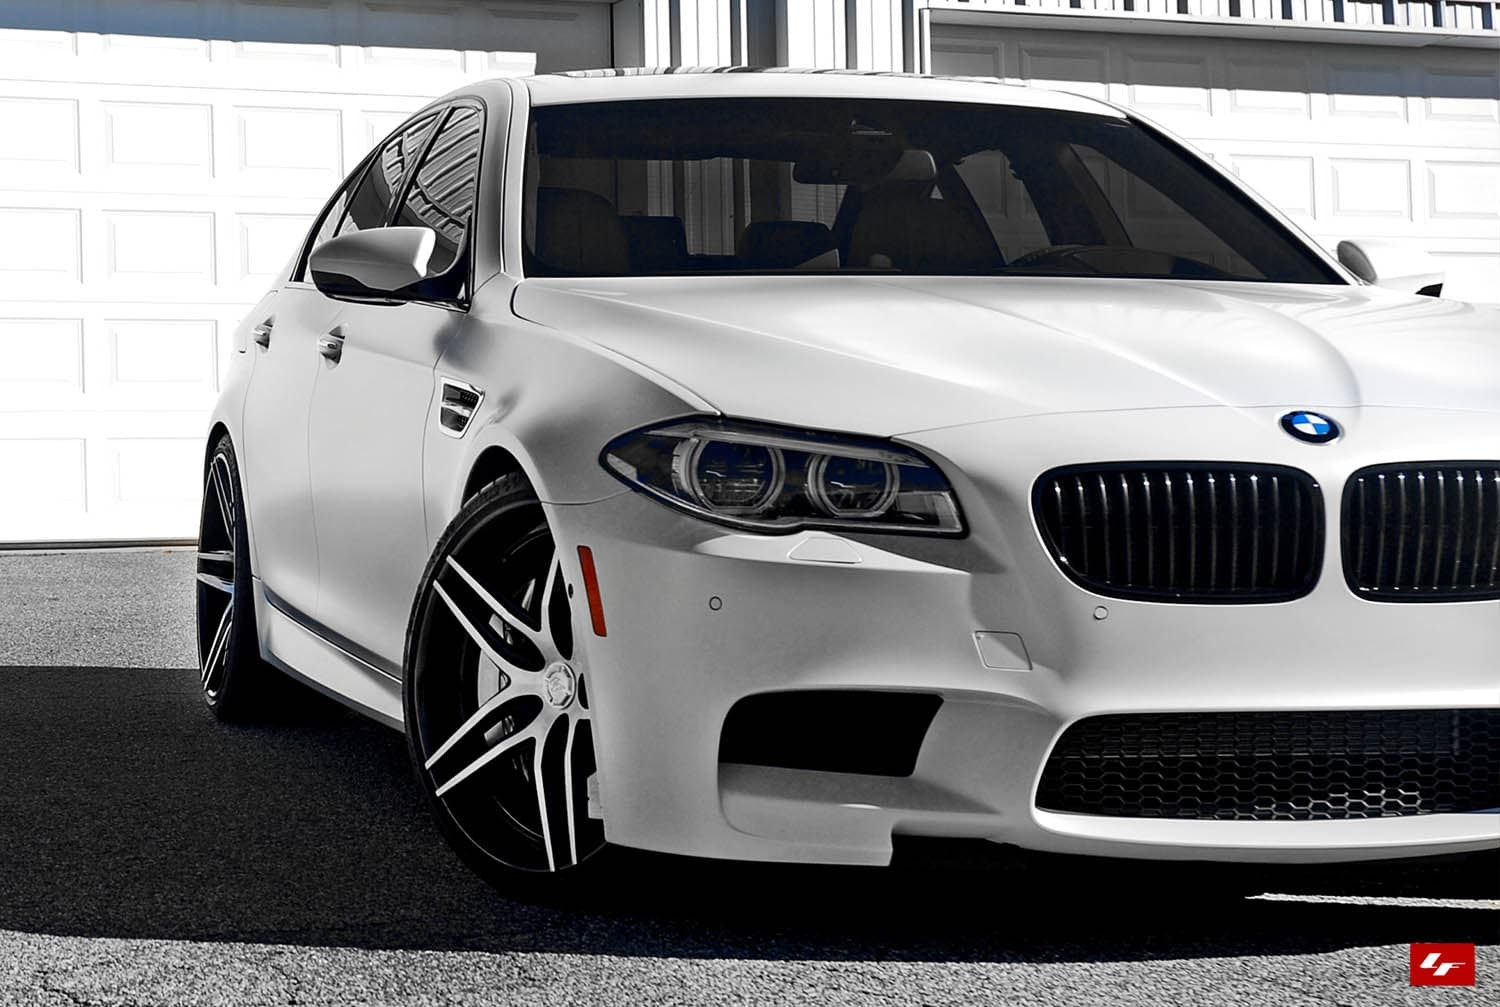 Color matching LZ-105 wheels on the 2014 BMW M5.